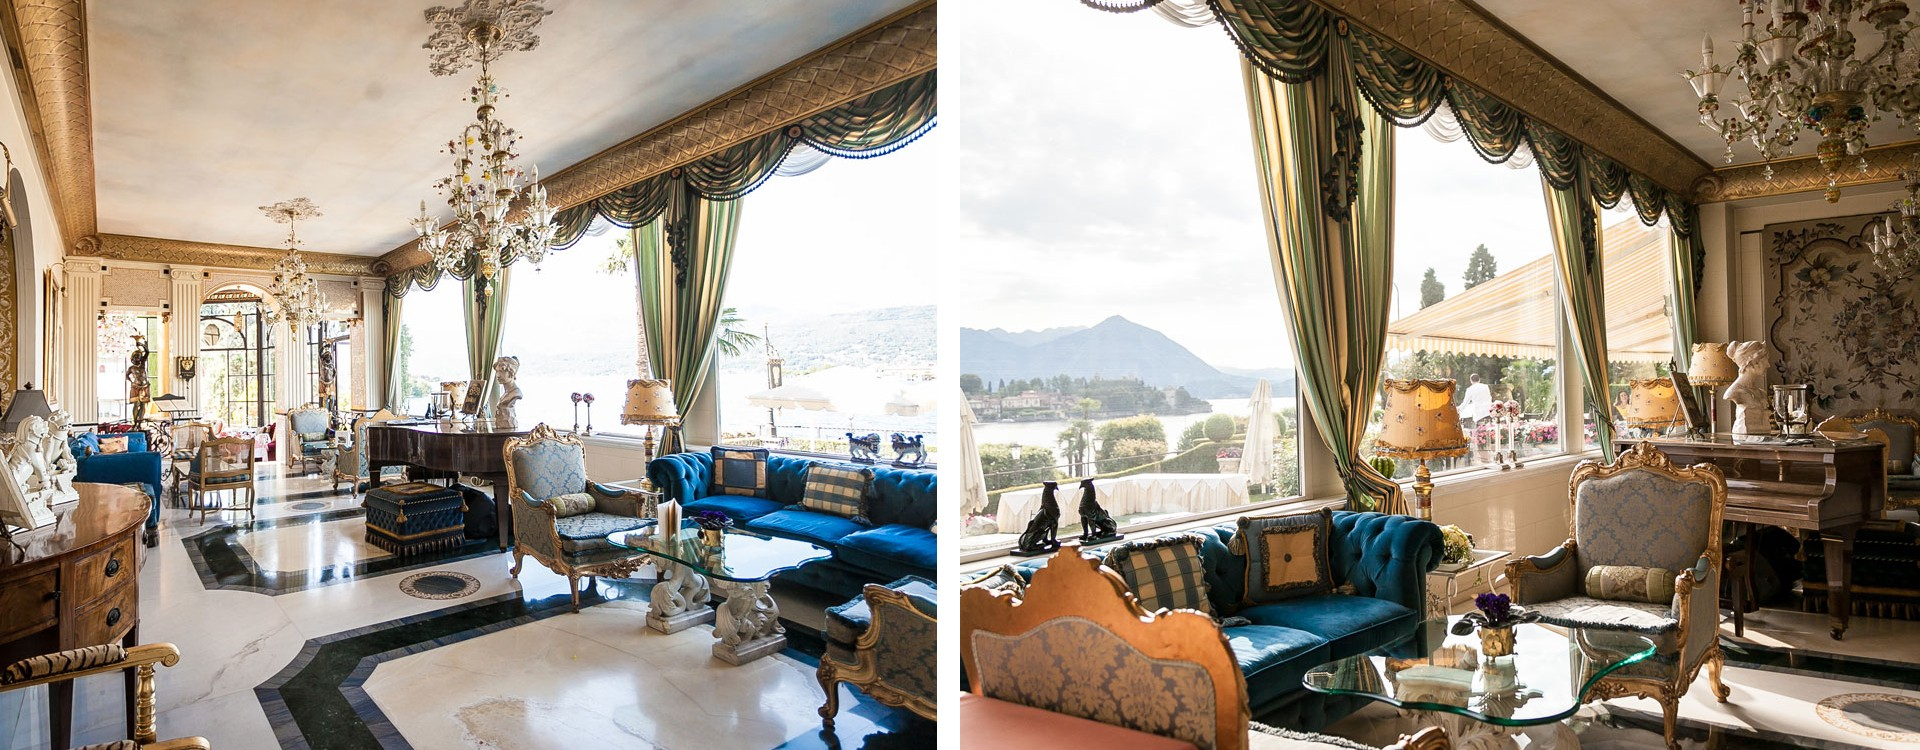 Villa Aminta on the shores of Lake Maggiore